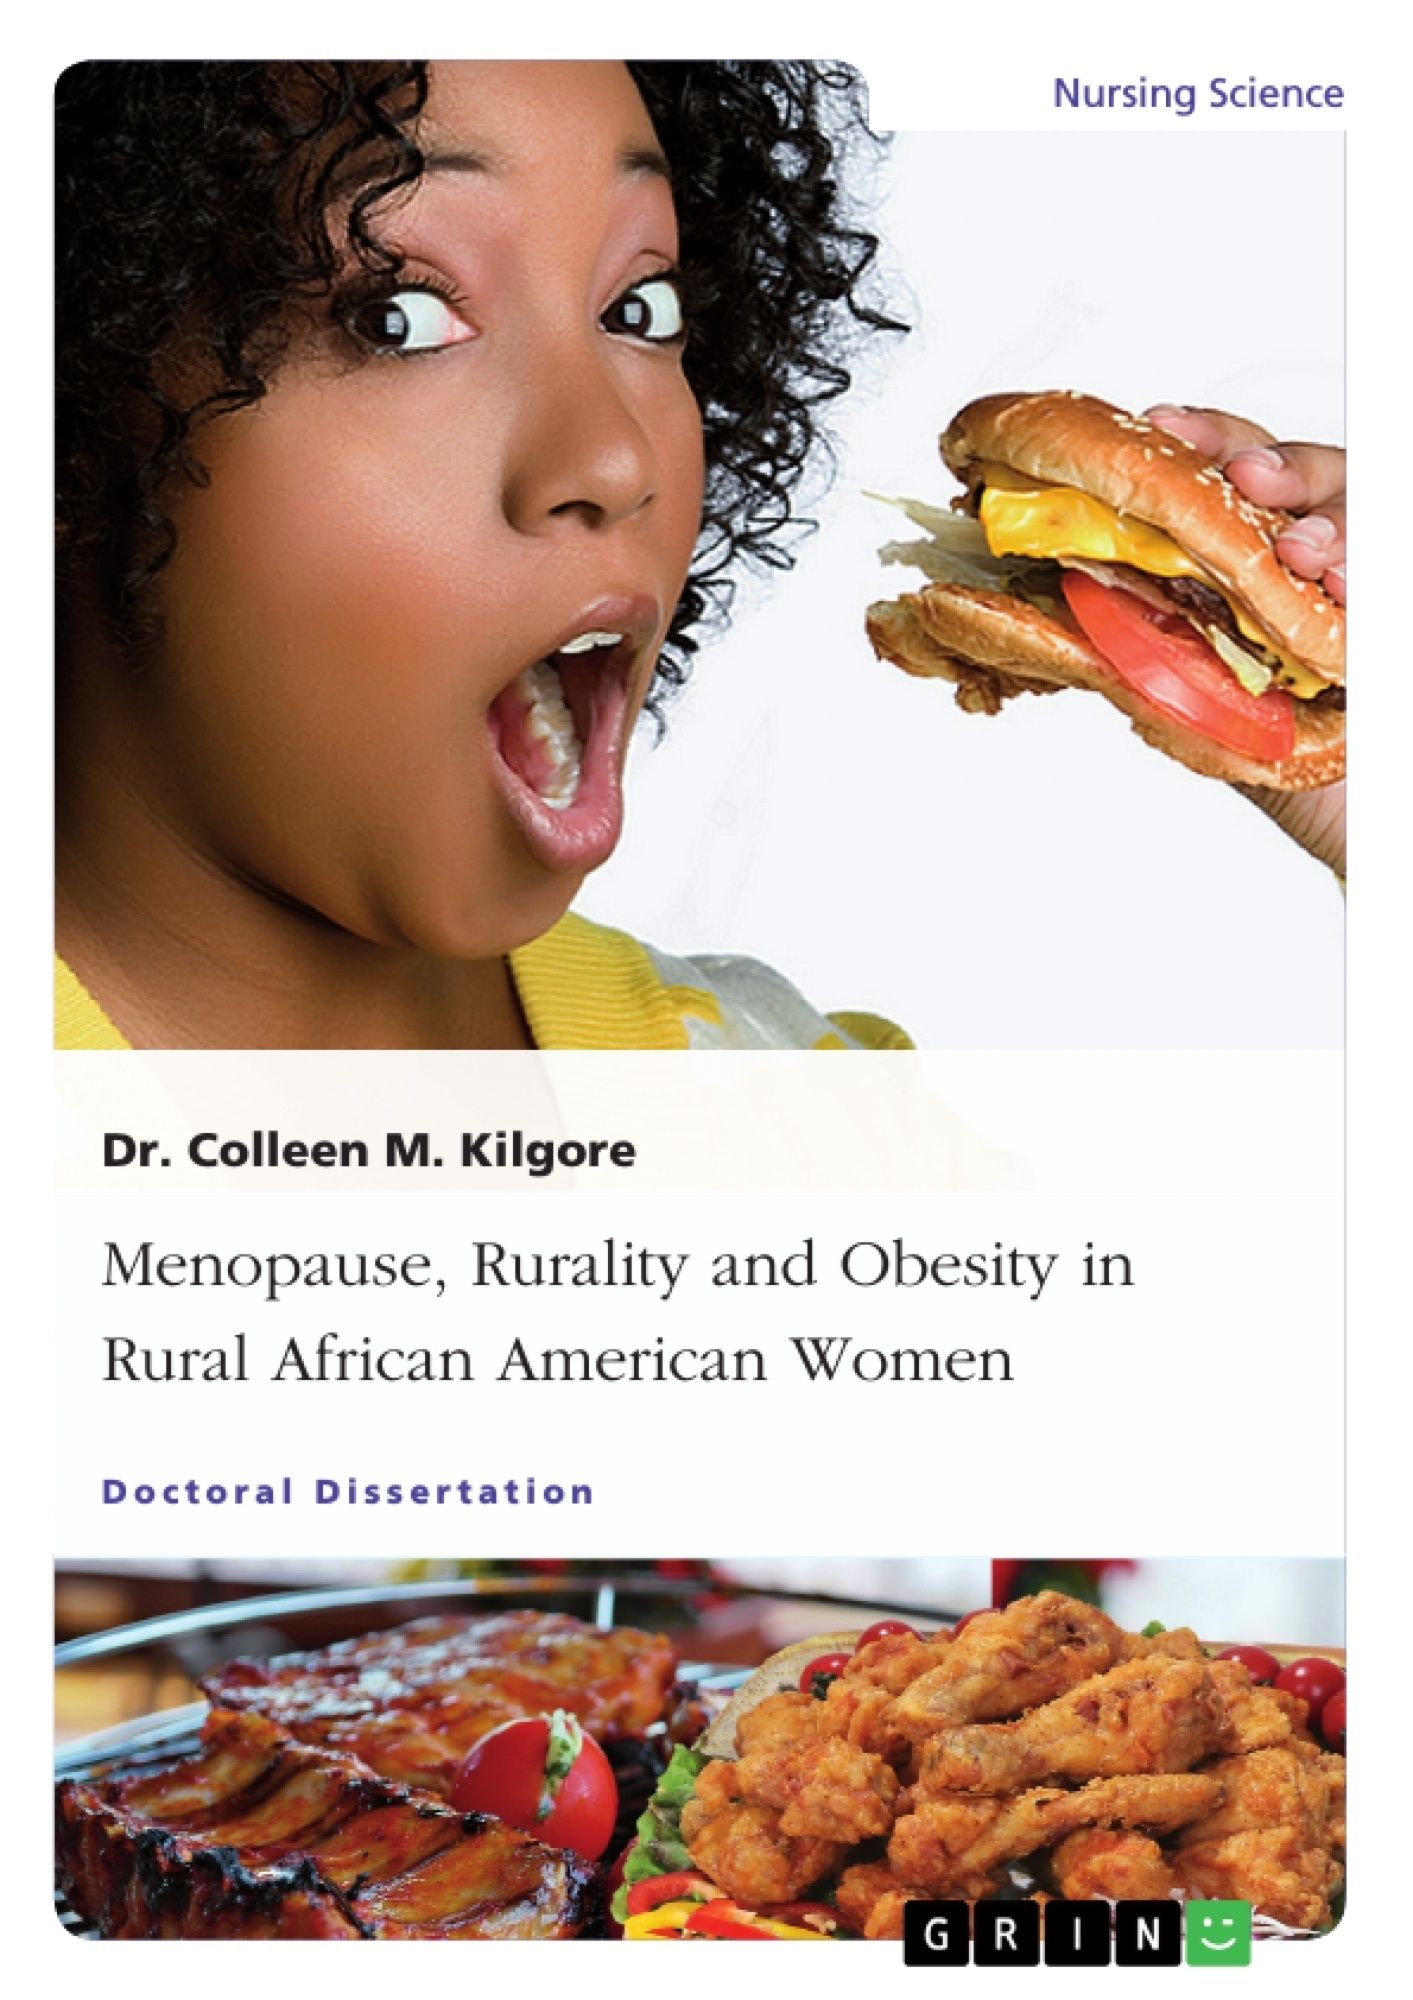 Title: Menopause, Rurality and Obesity in Rural African American Women